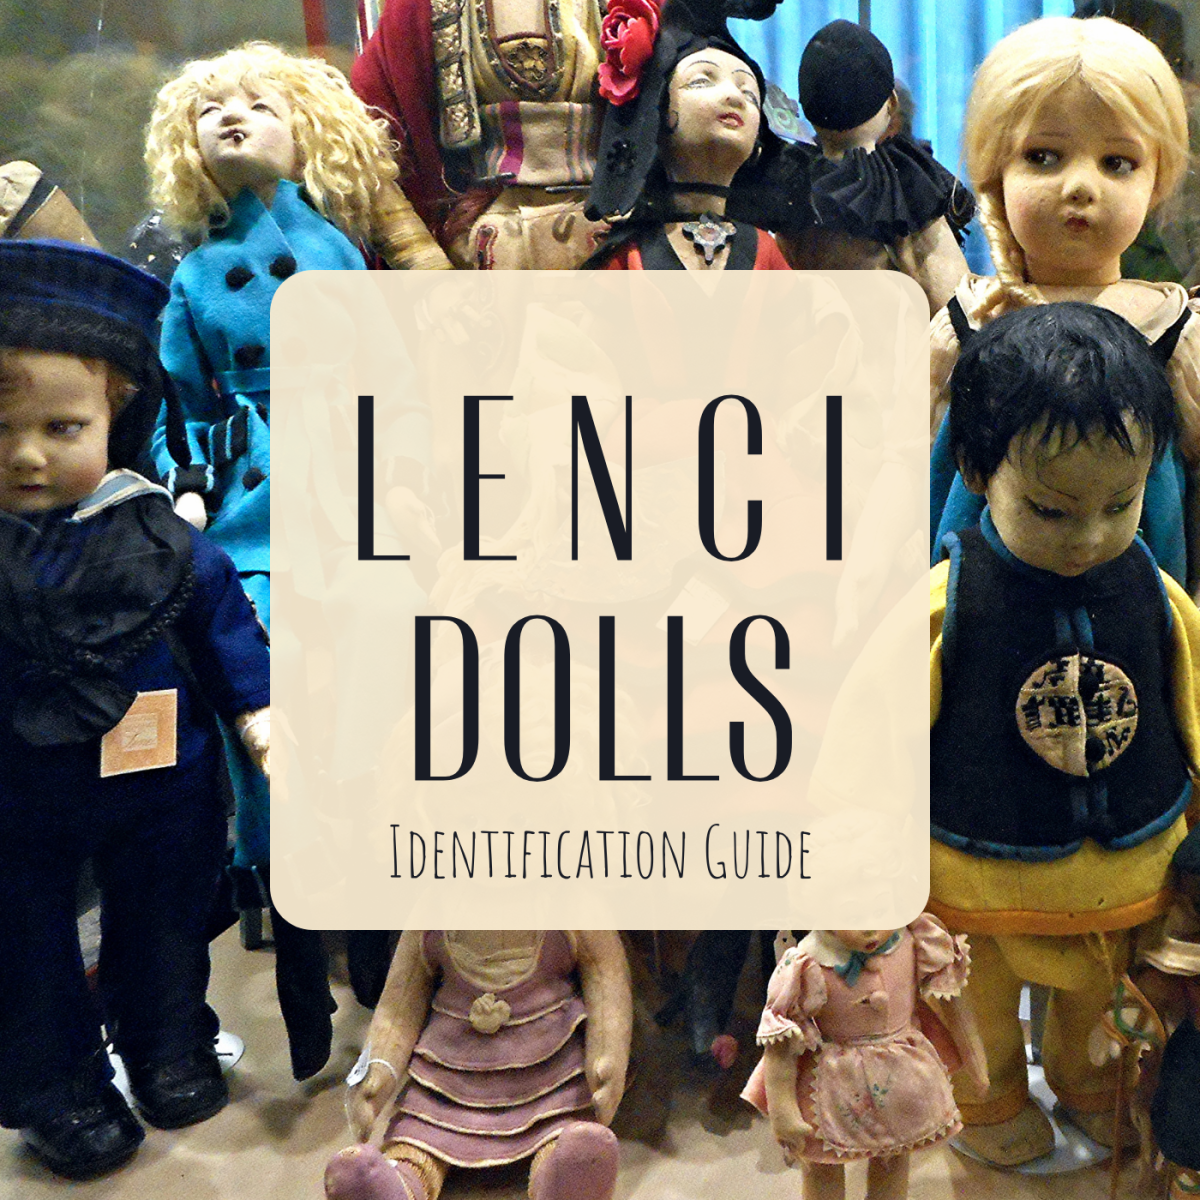 Learn about the beautiful dolls made by the skilled dollmaker known as Lenci.